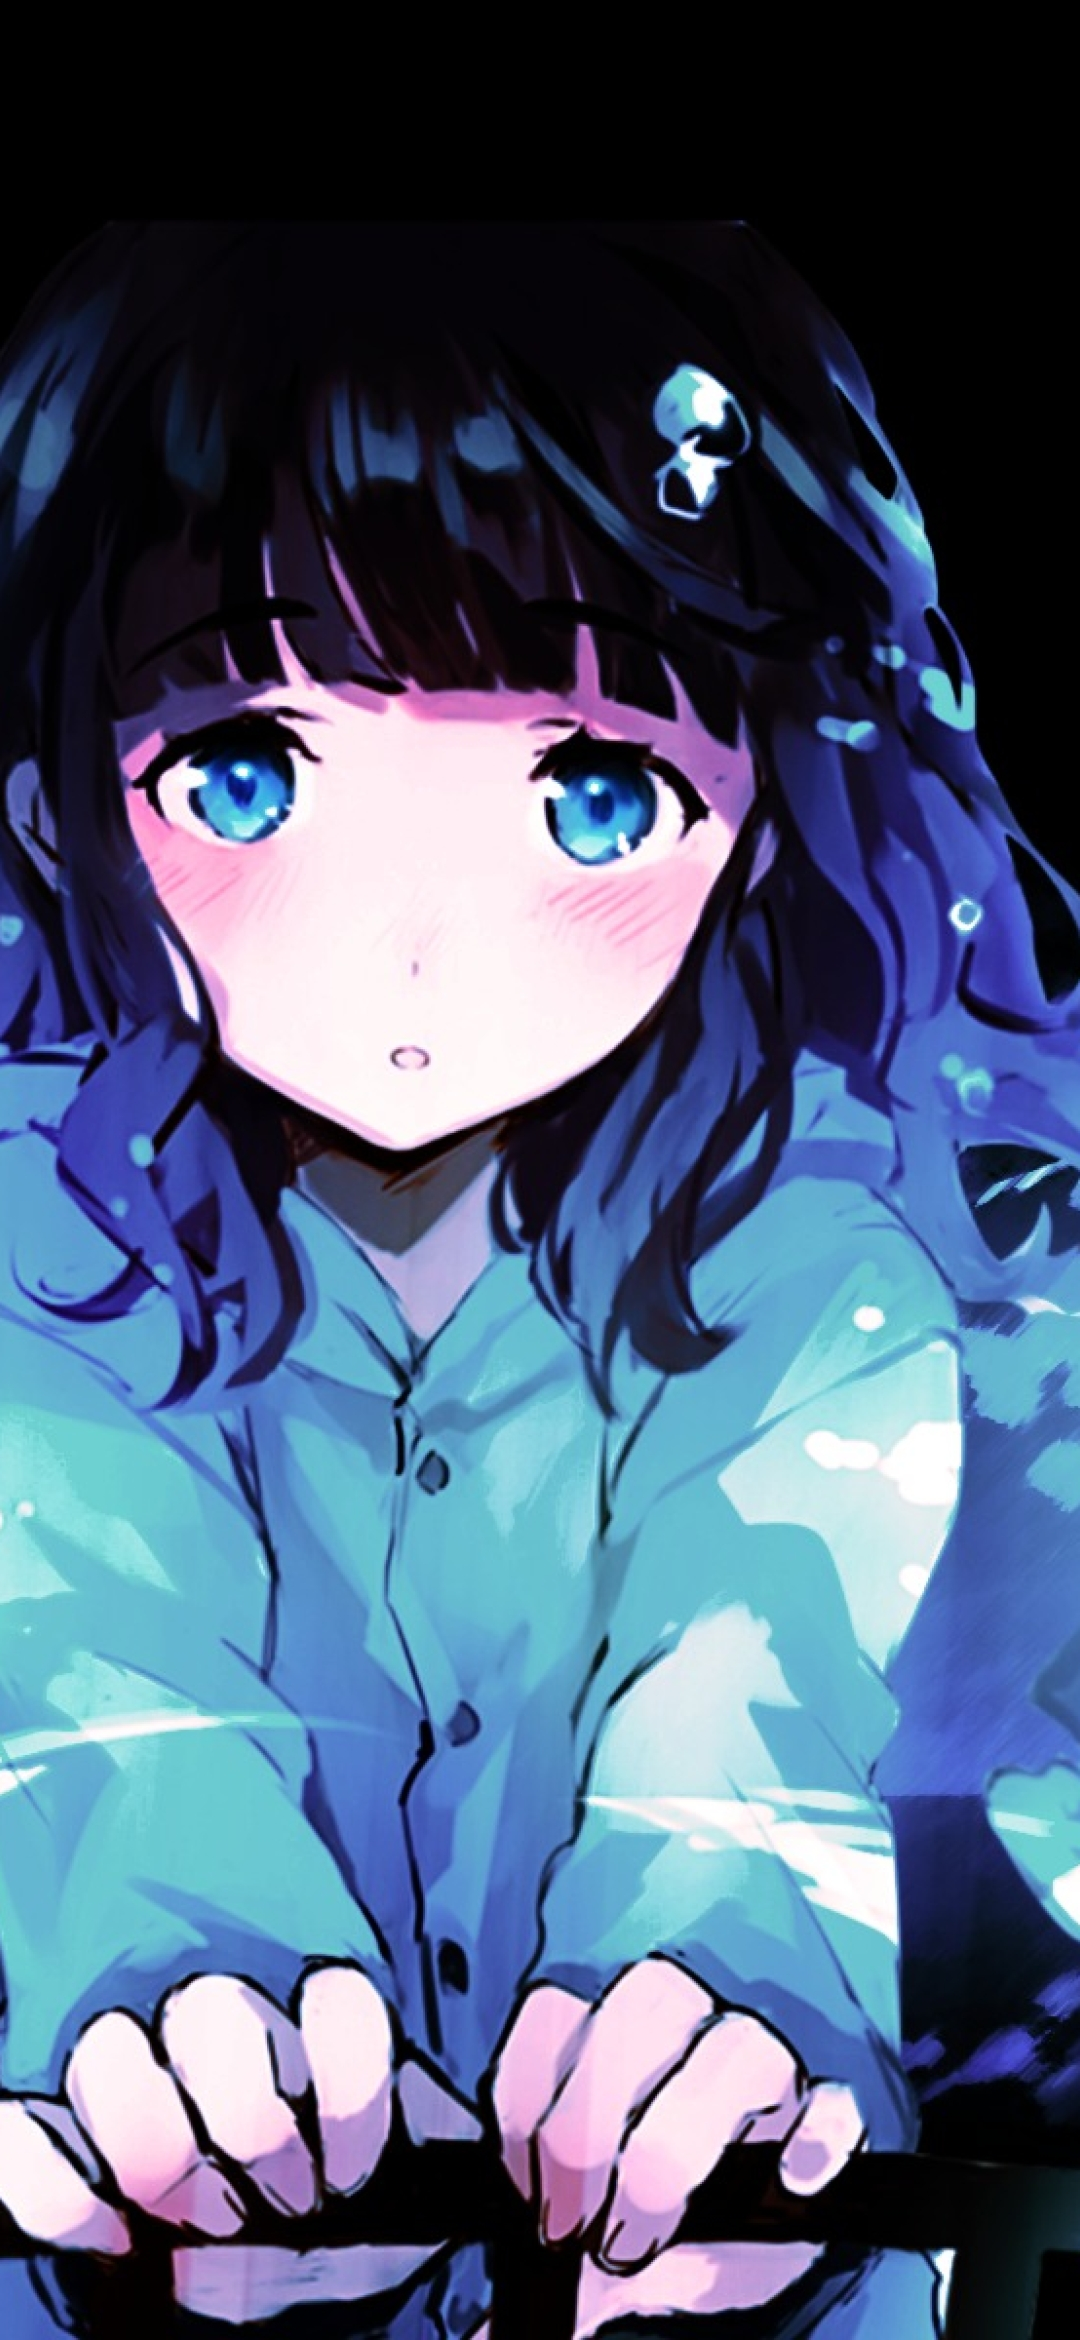 1080x2340 Anime Sad Girl 1080x2340 Resolution Wallpaper Hd